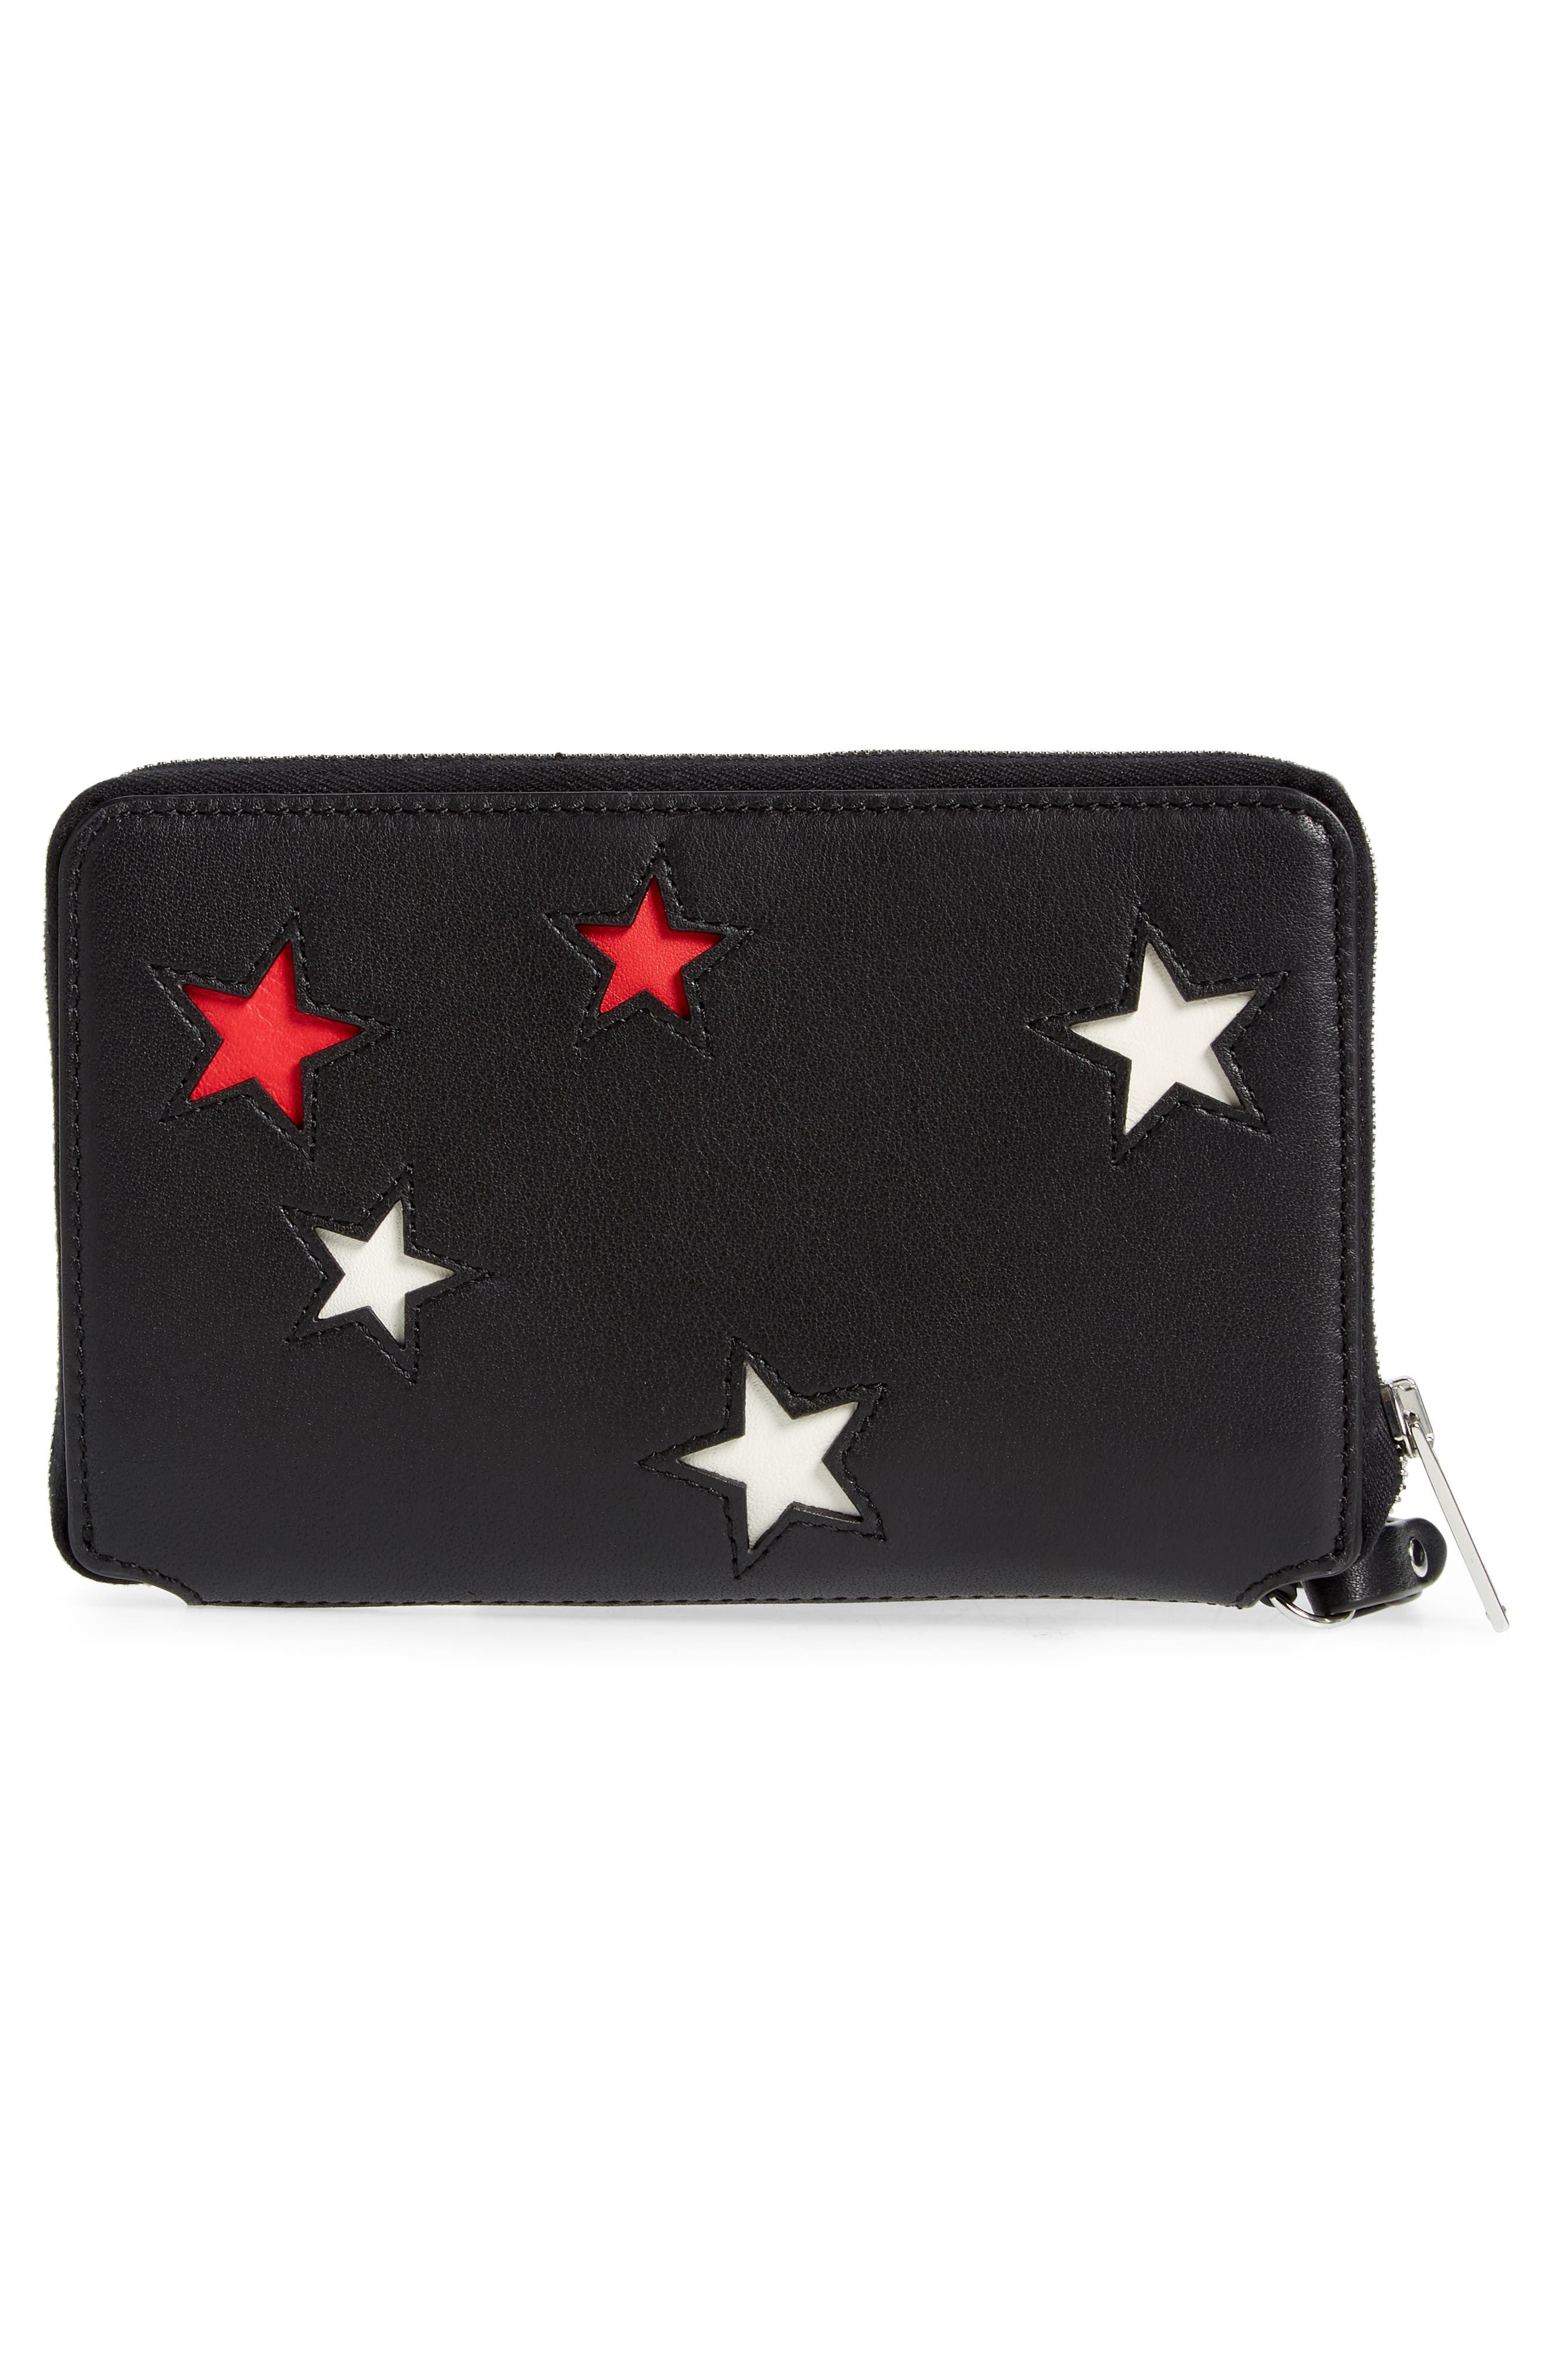 Croc Stars Leather iPhone 6/7/8 & X Wallet,                             Alternate thumbnail 3, color,                             STAR MULTI